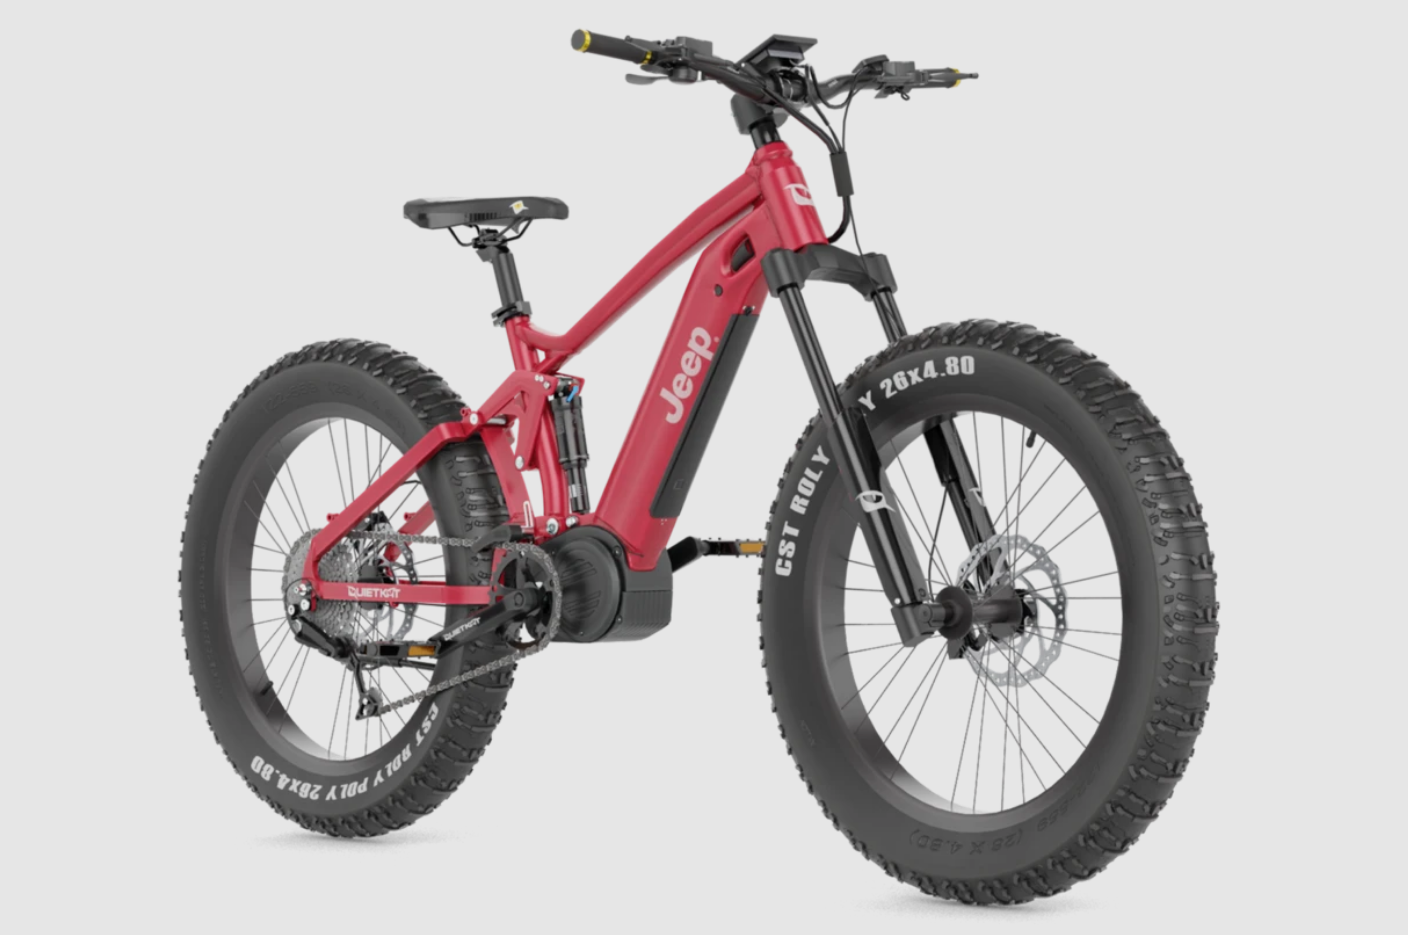 2021 Jeep® e-Bike powered by QUIETKAT